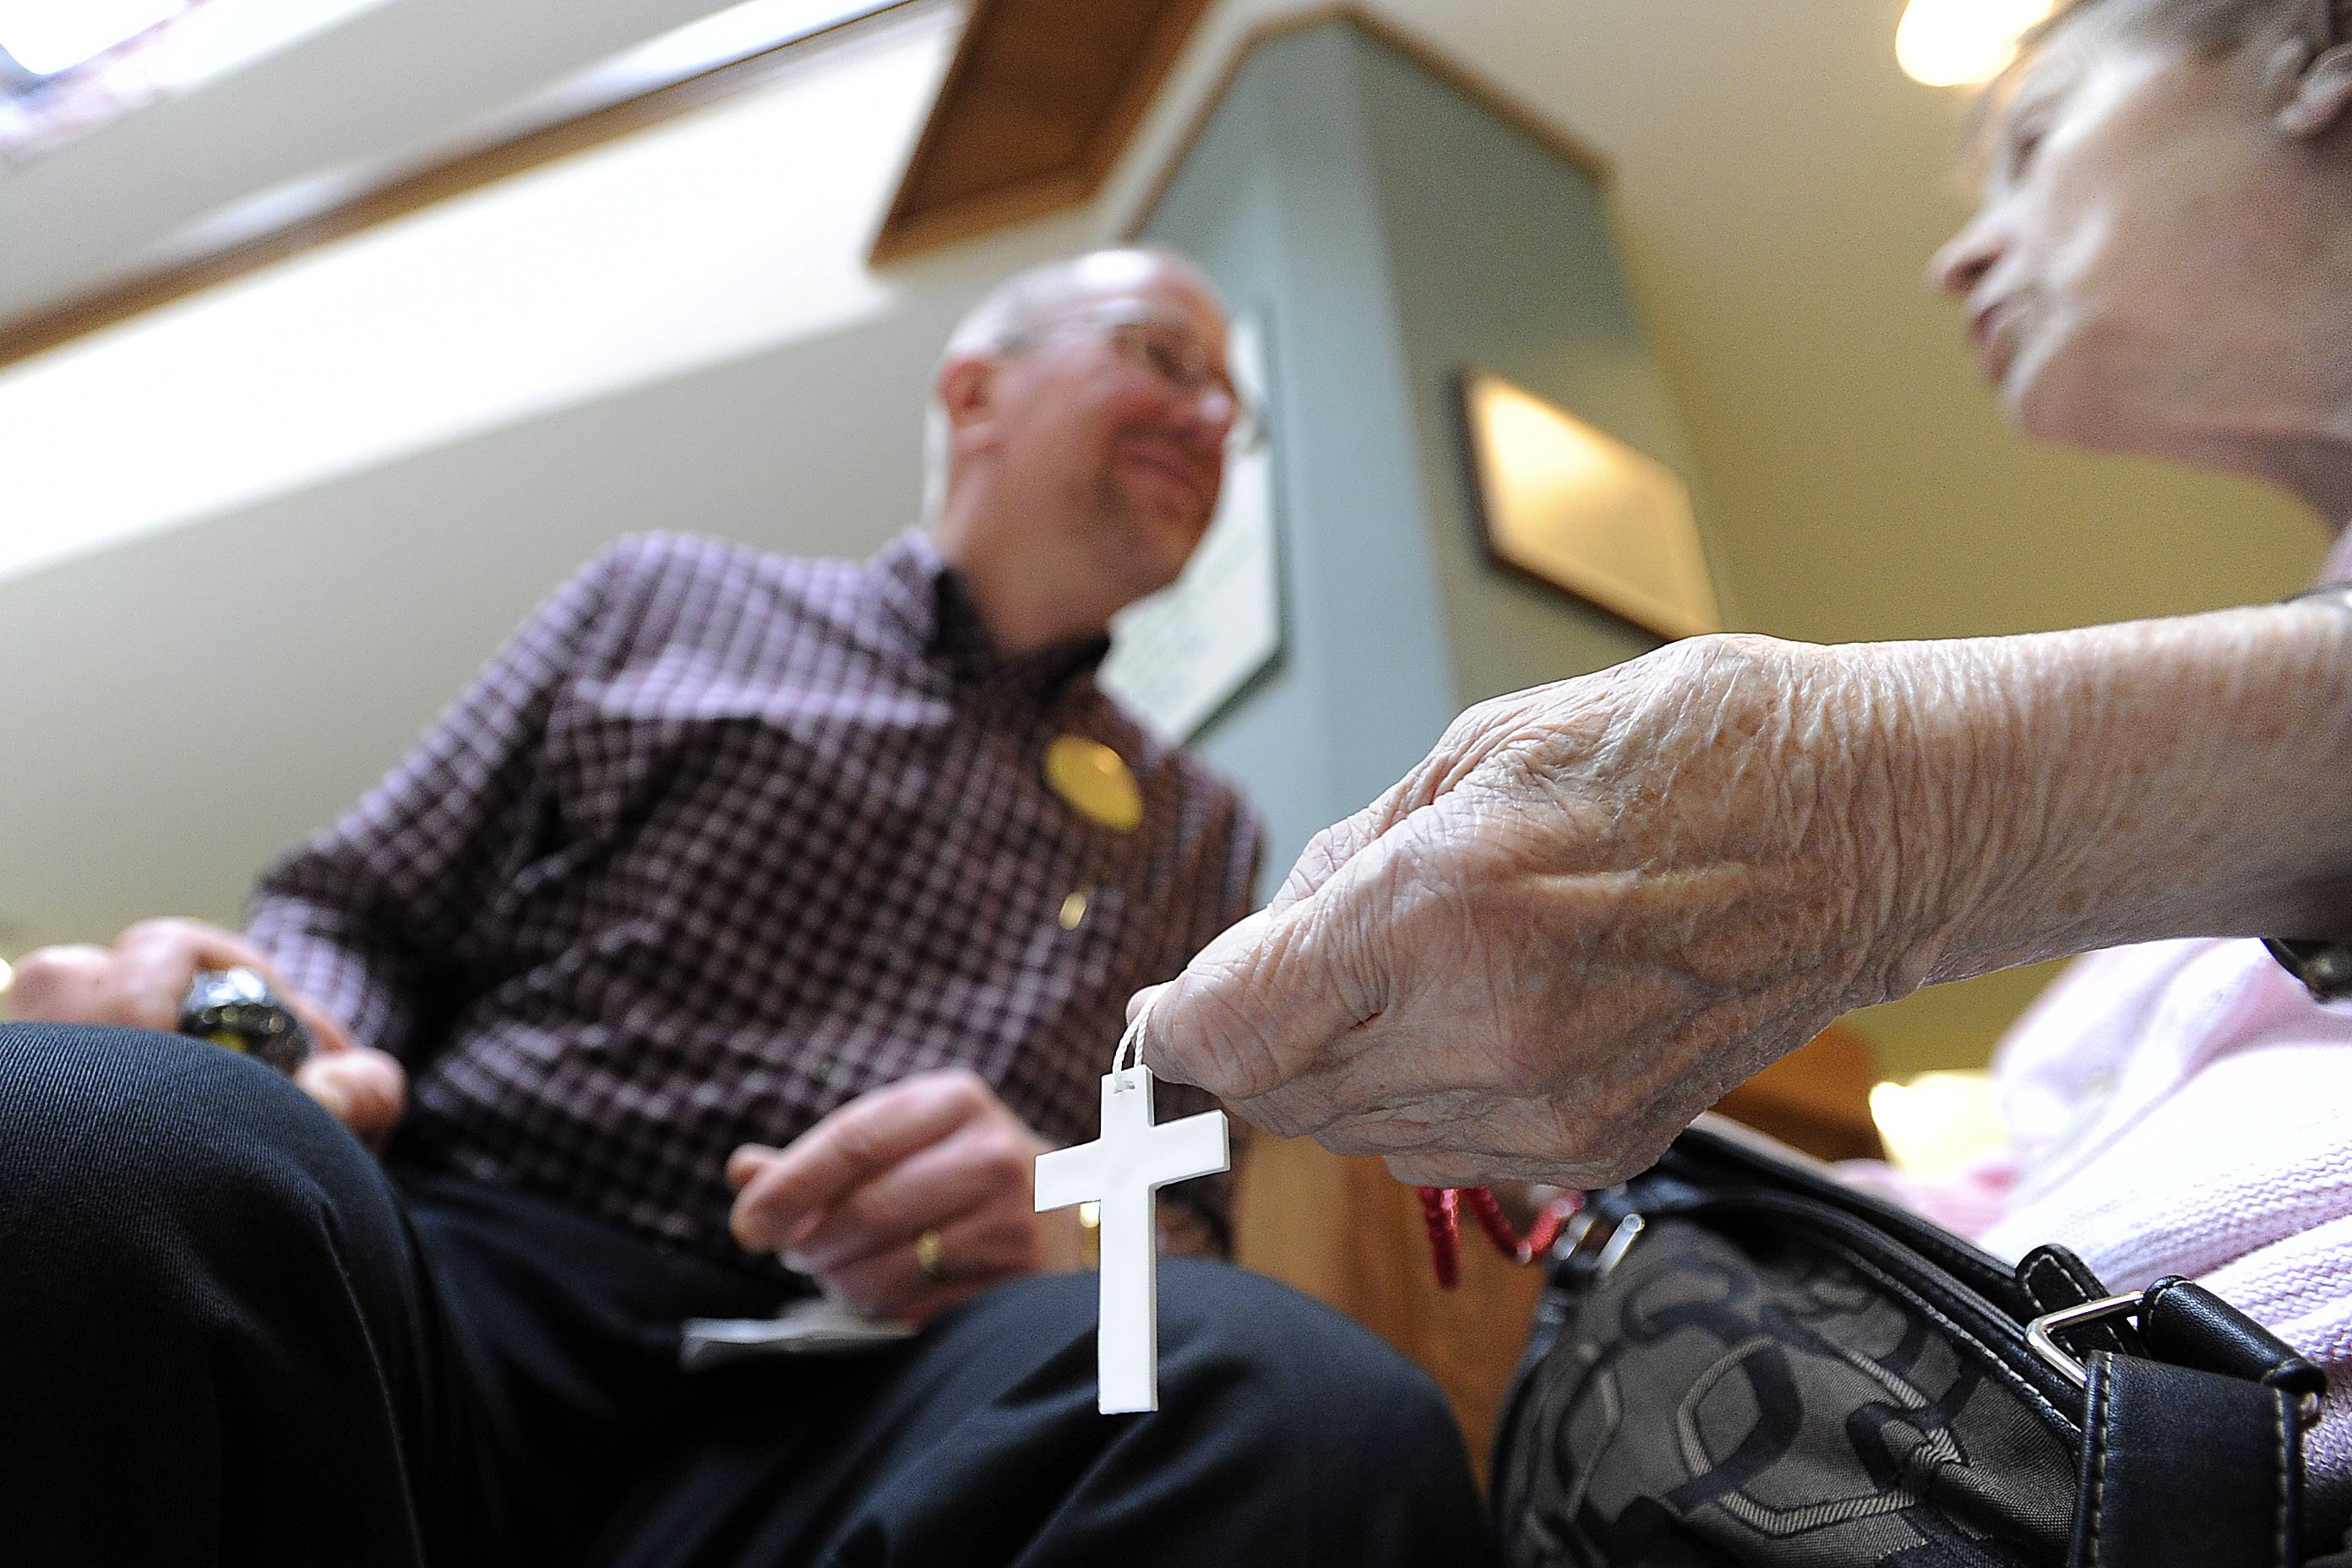 The Rev. Shawn Kafader visits with Rosie Picciarello, a resident of Friendship Village on his daily rounds. The chaplain makes rosaries at home and gives them to the residents.